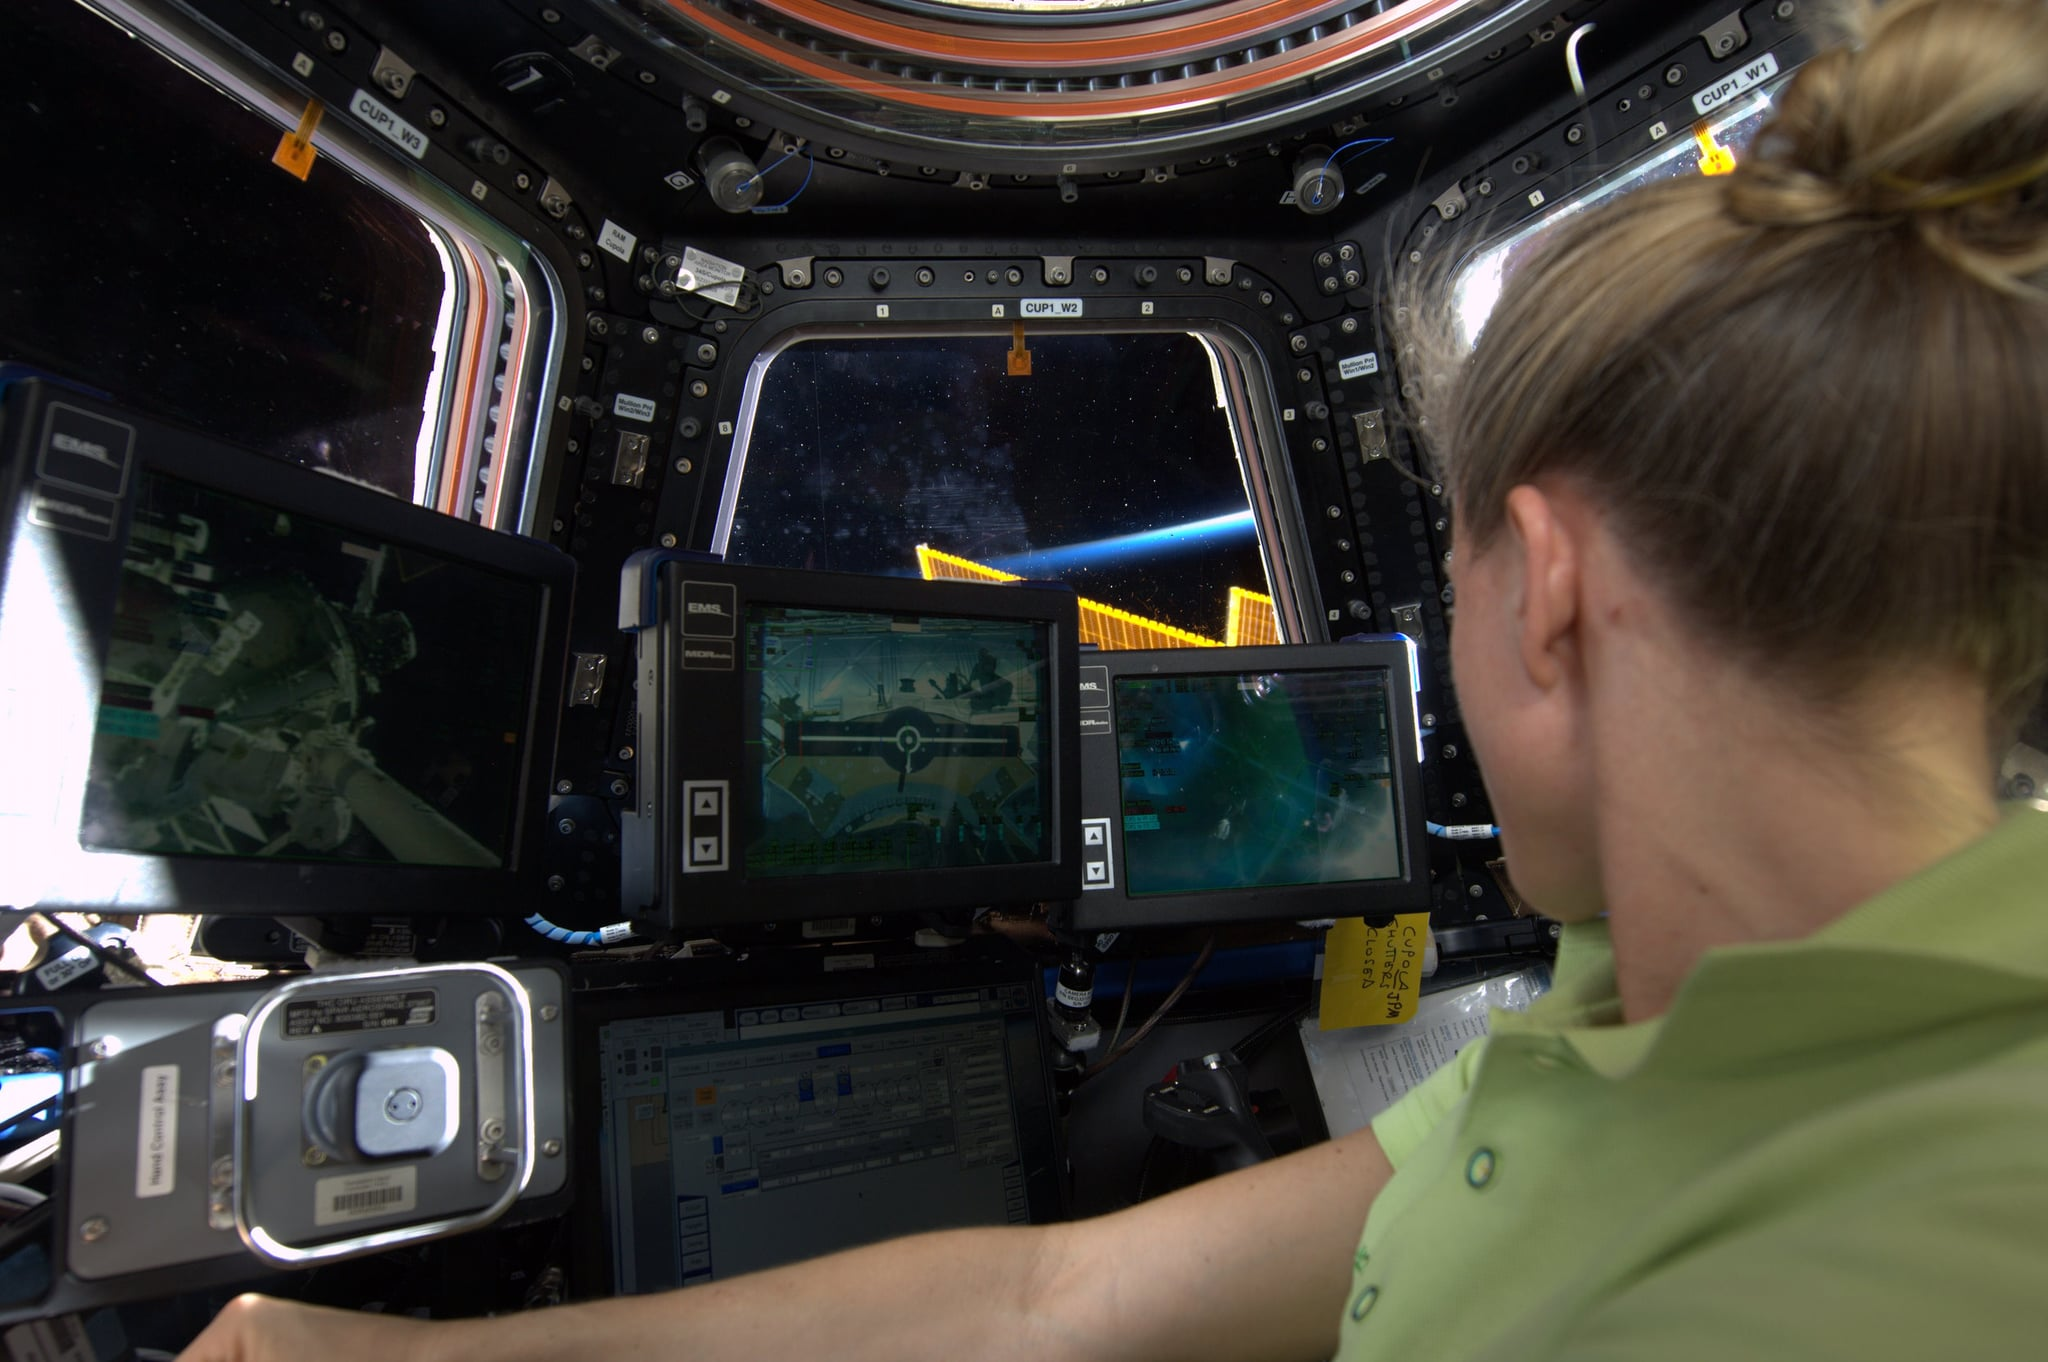 """""""At the Robotics Work Station in the Cupola. This is where we'll be to capture #HTV4 cargo vehicle with #Canadarm2 on Friday, August 9. My incentive: garlic paste and a care package from home! KN from space."""" Source: Pinterest user Karen Nyberg"""